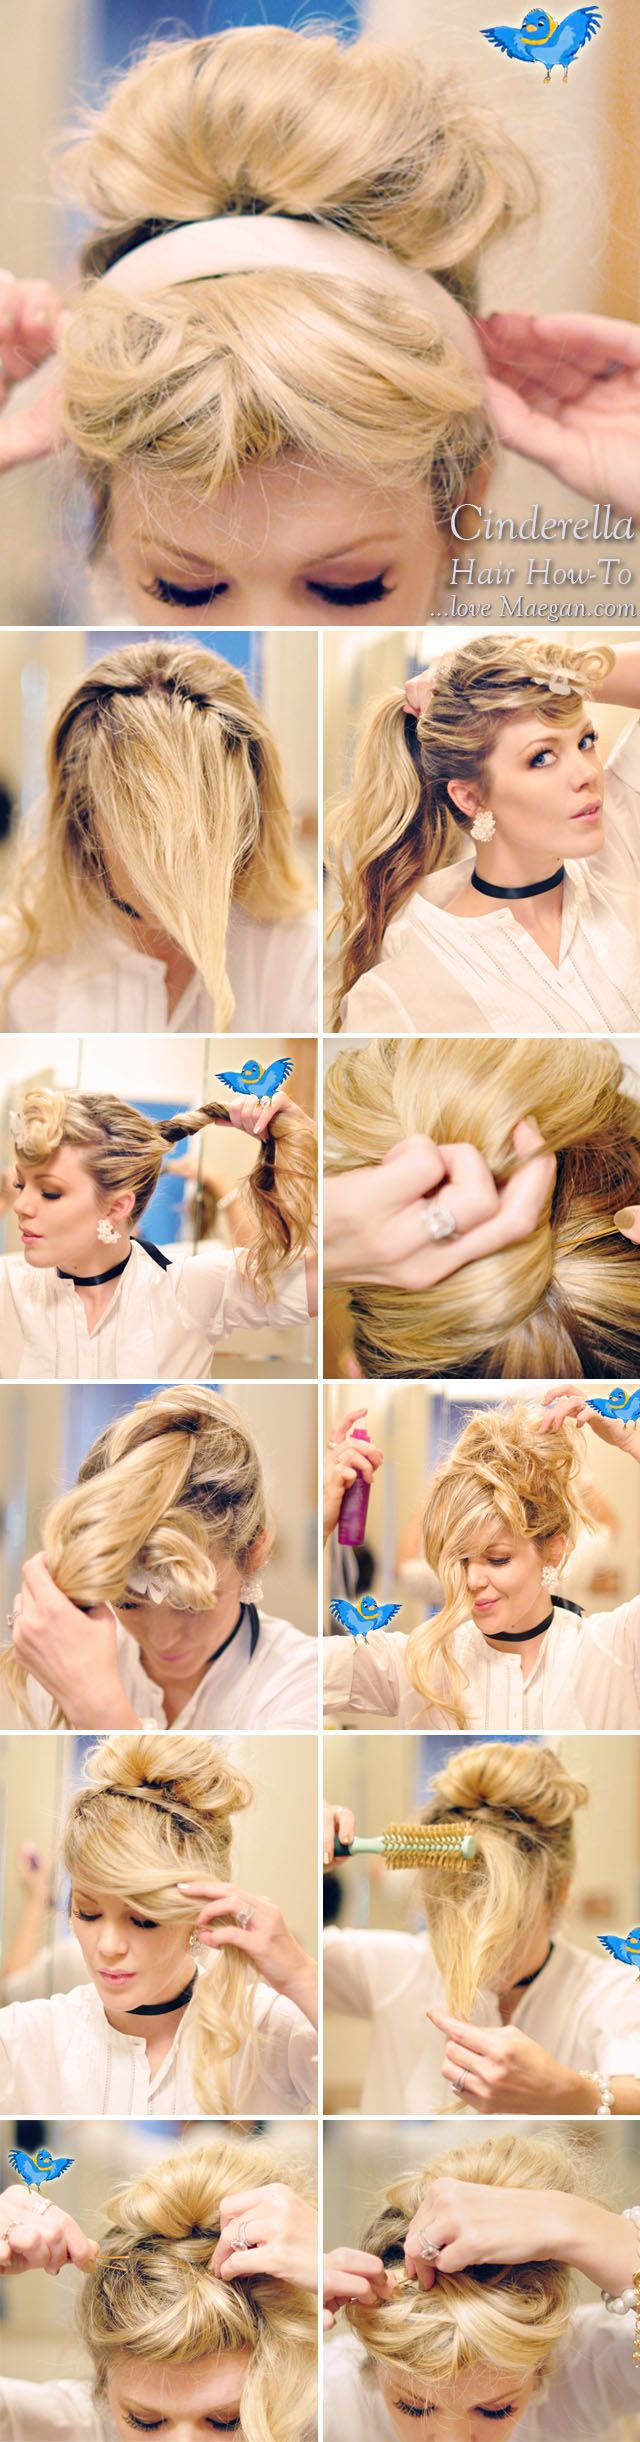 Trendy And Stylish Hair Tutorial Series For You